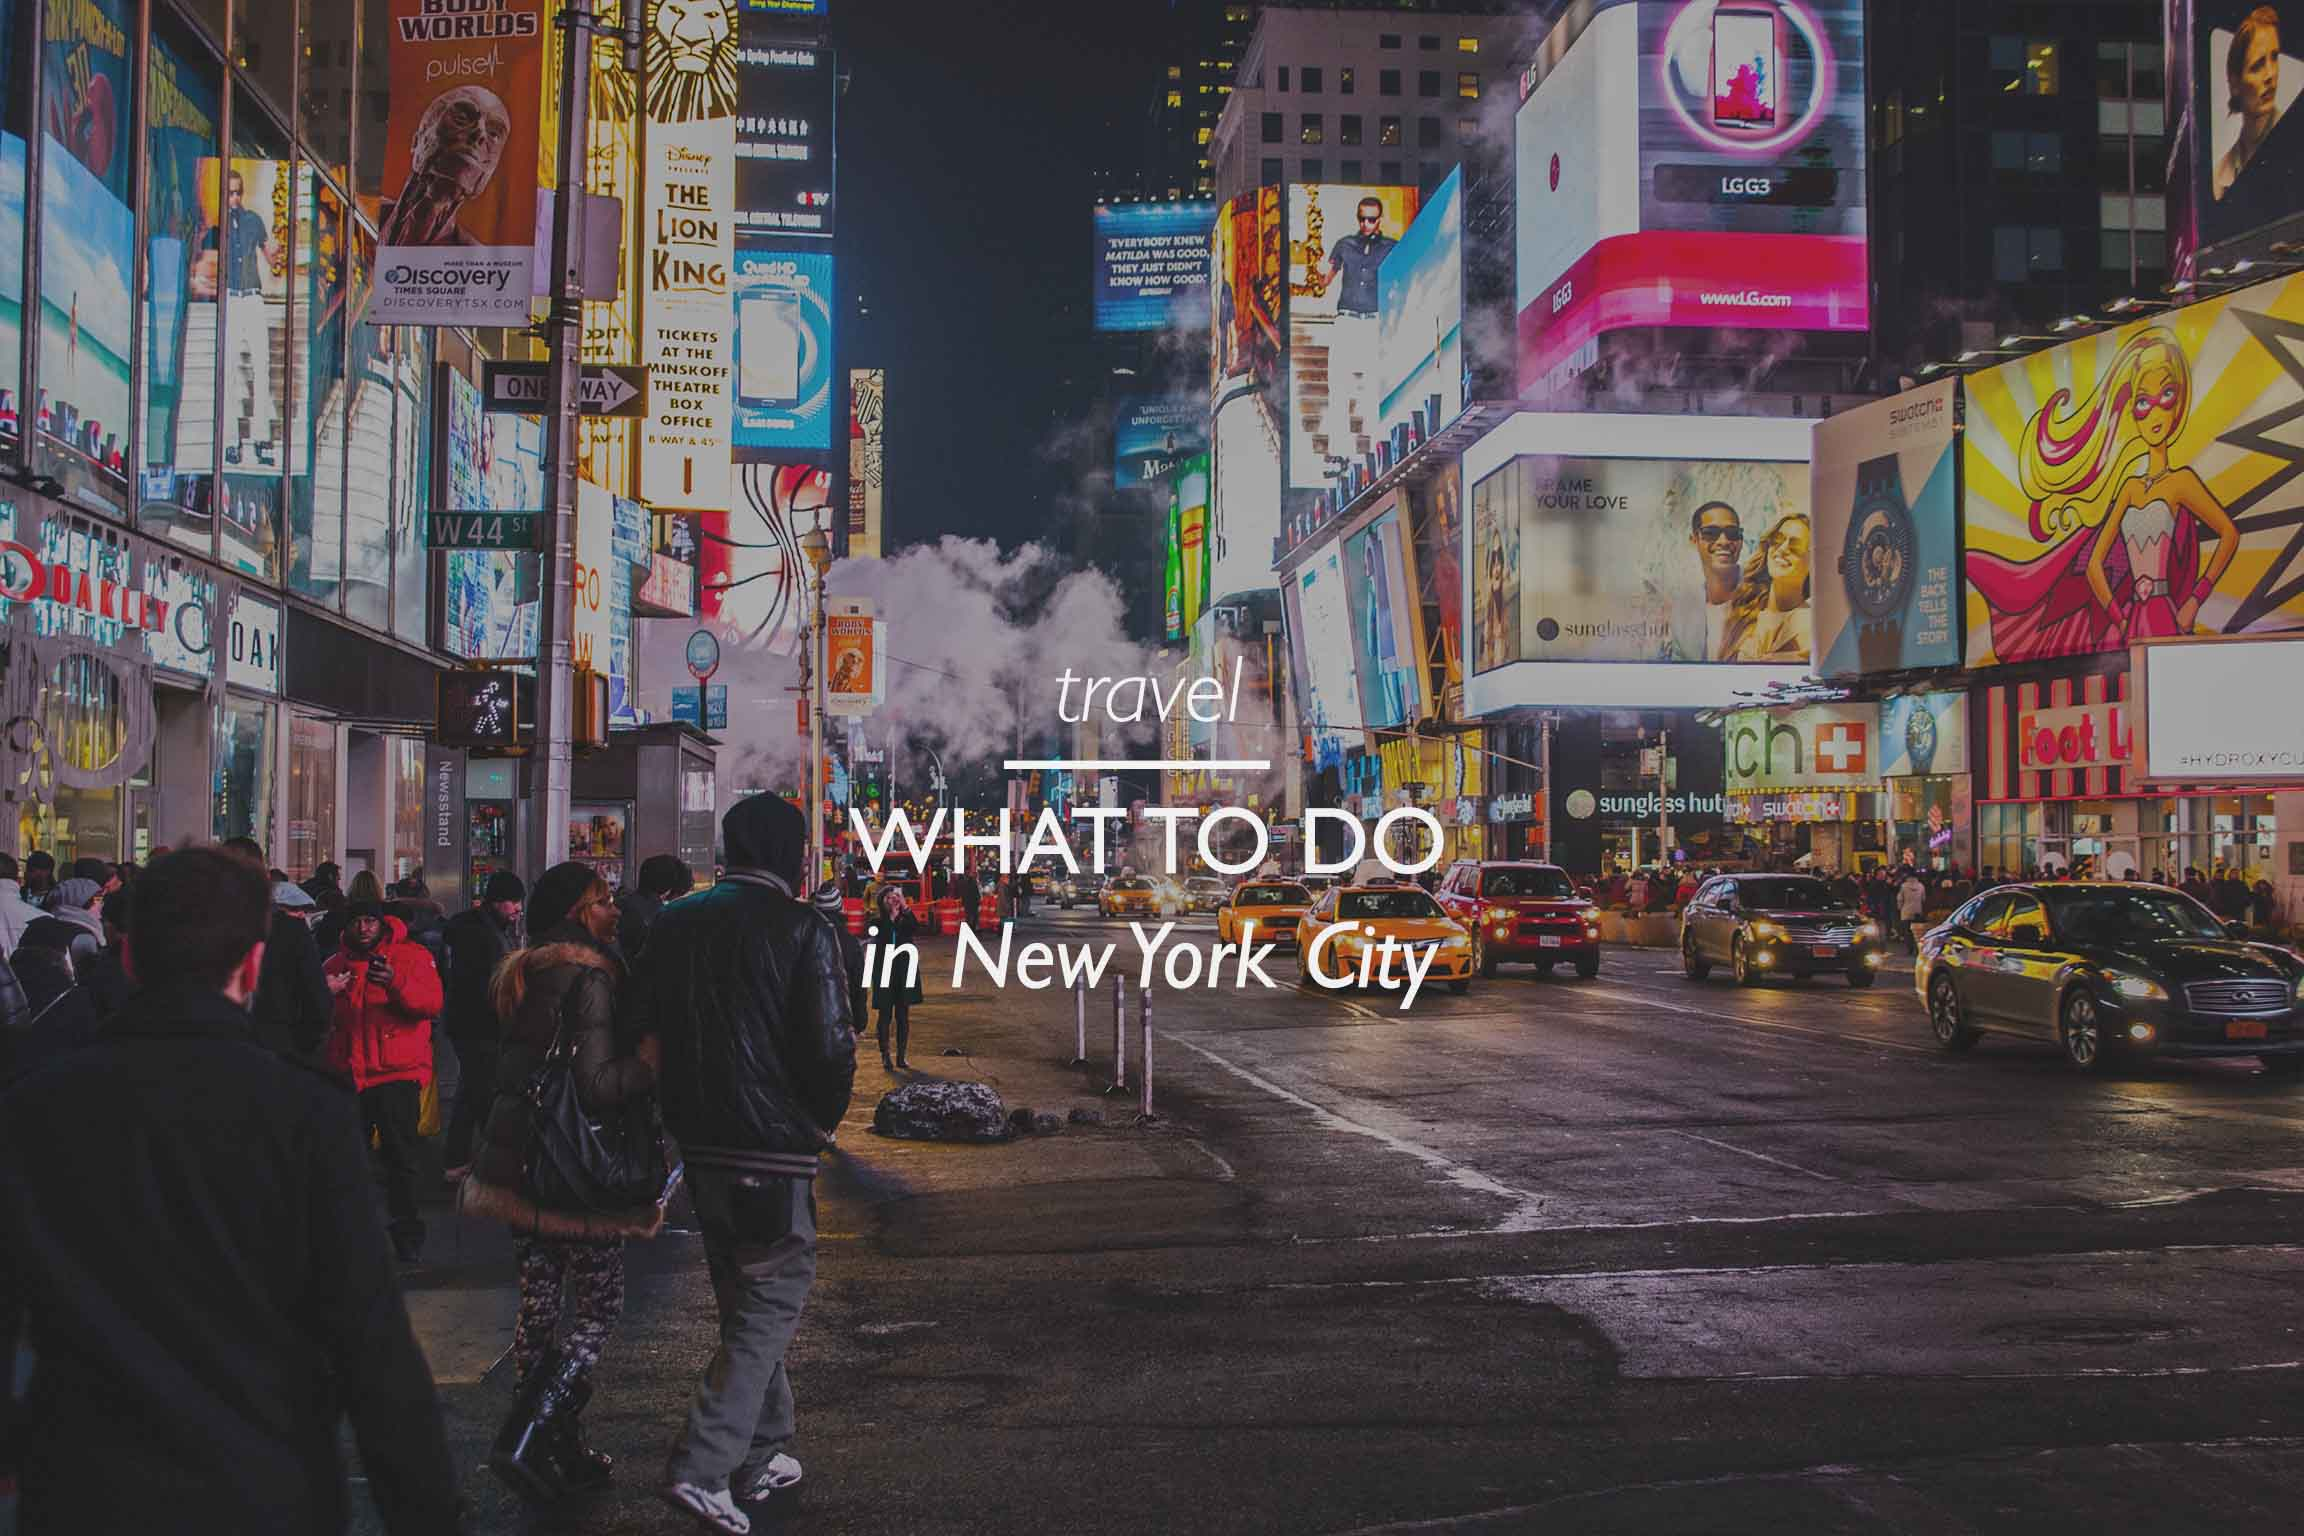 NYC Attractions and Things to do